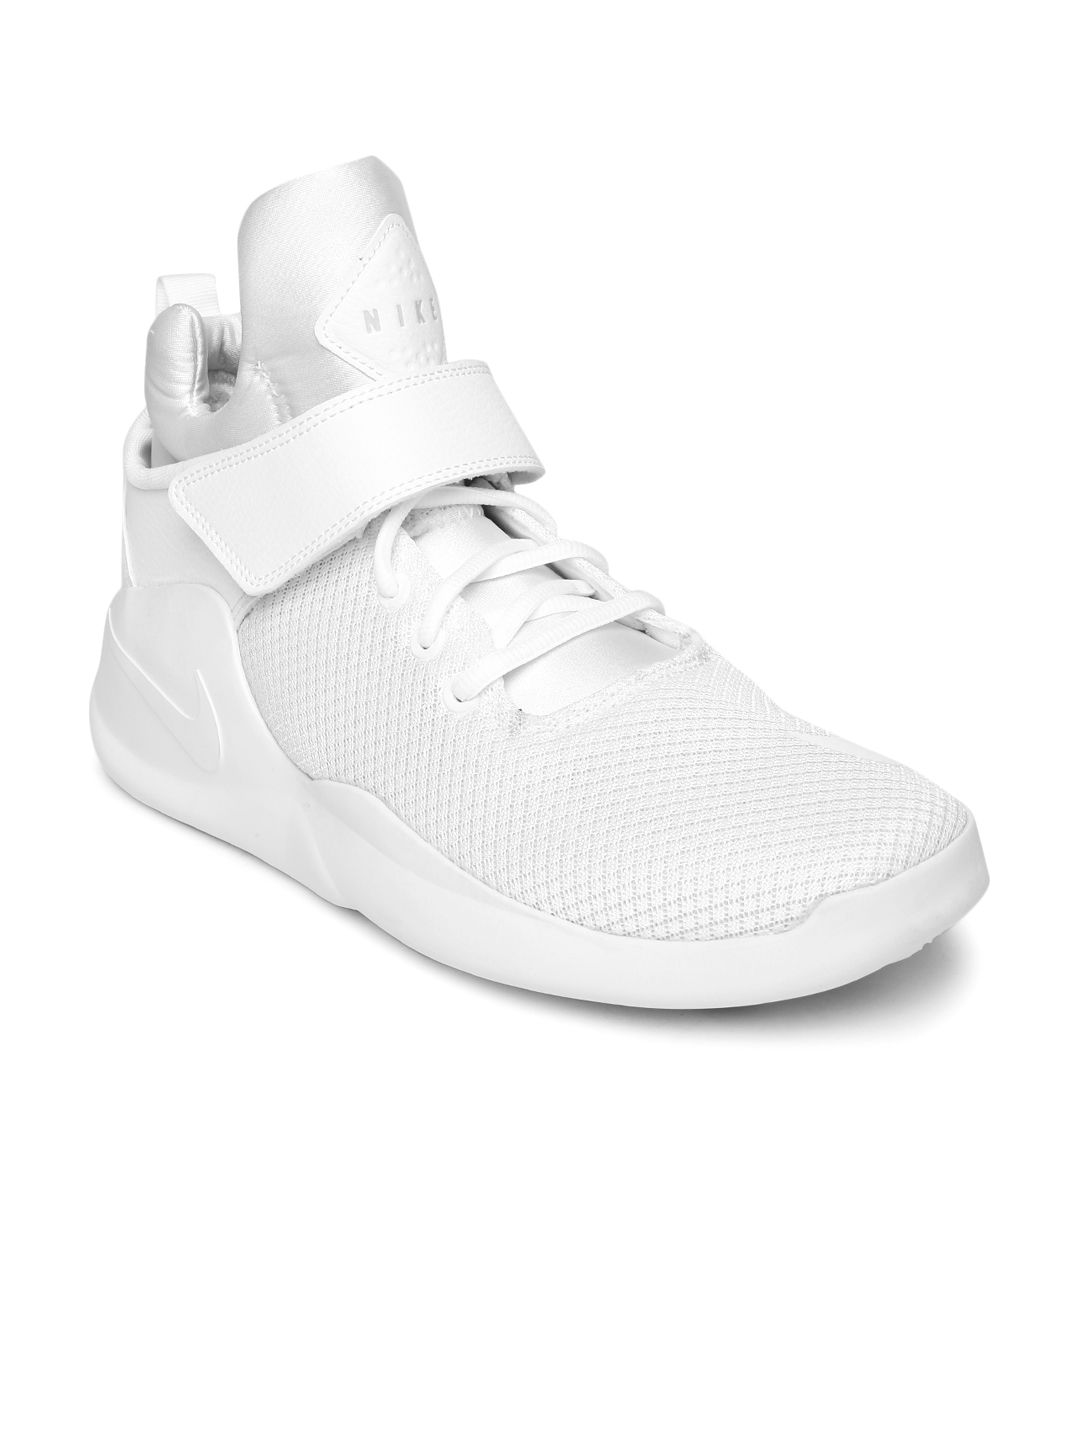 1adaed30fa5e3d Buy Nike Men White Kwazi Mid Top Sneakers - Casual Shoes for Men 1421298